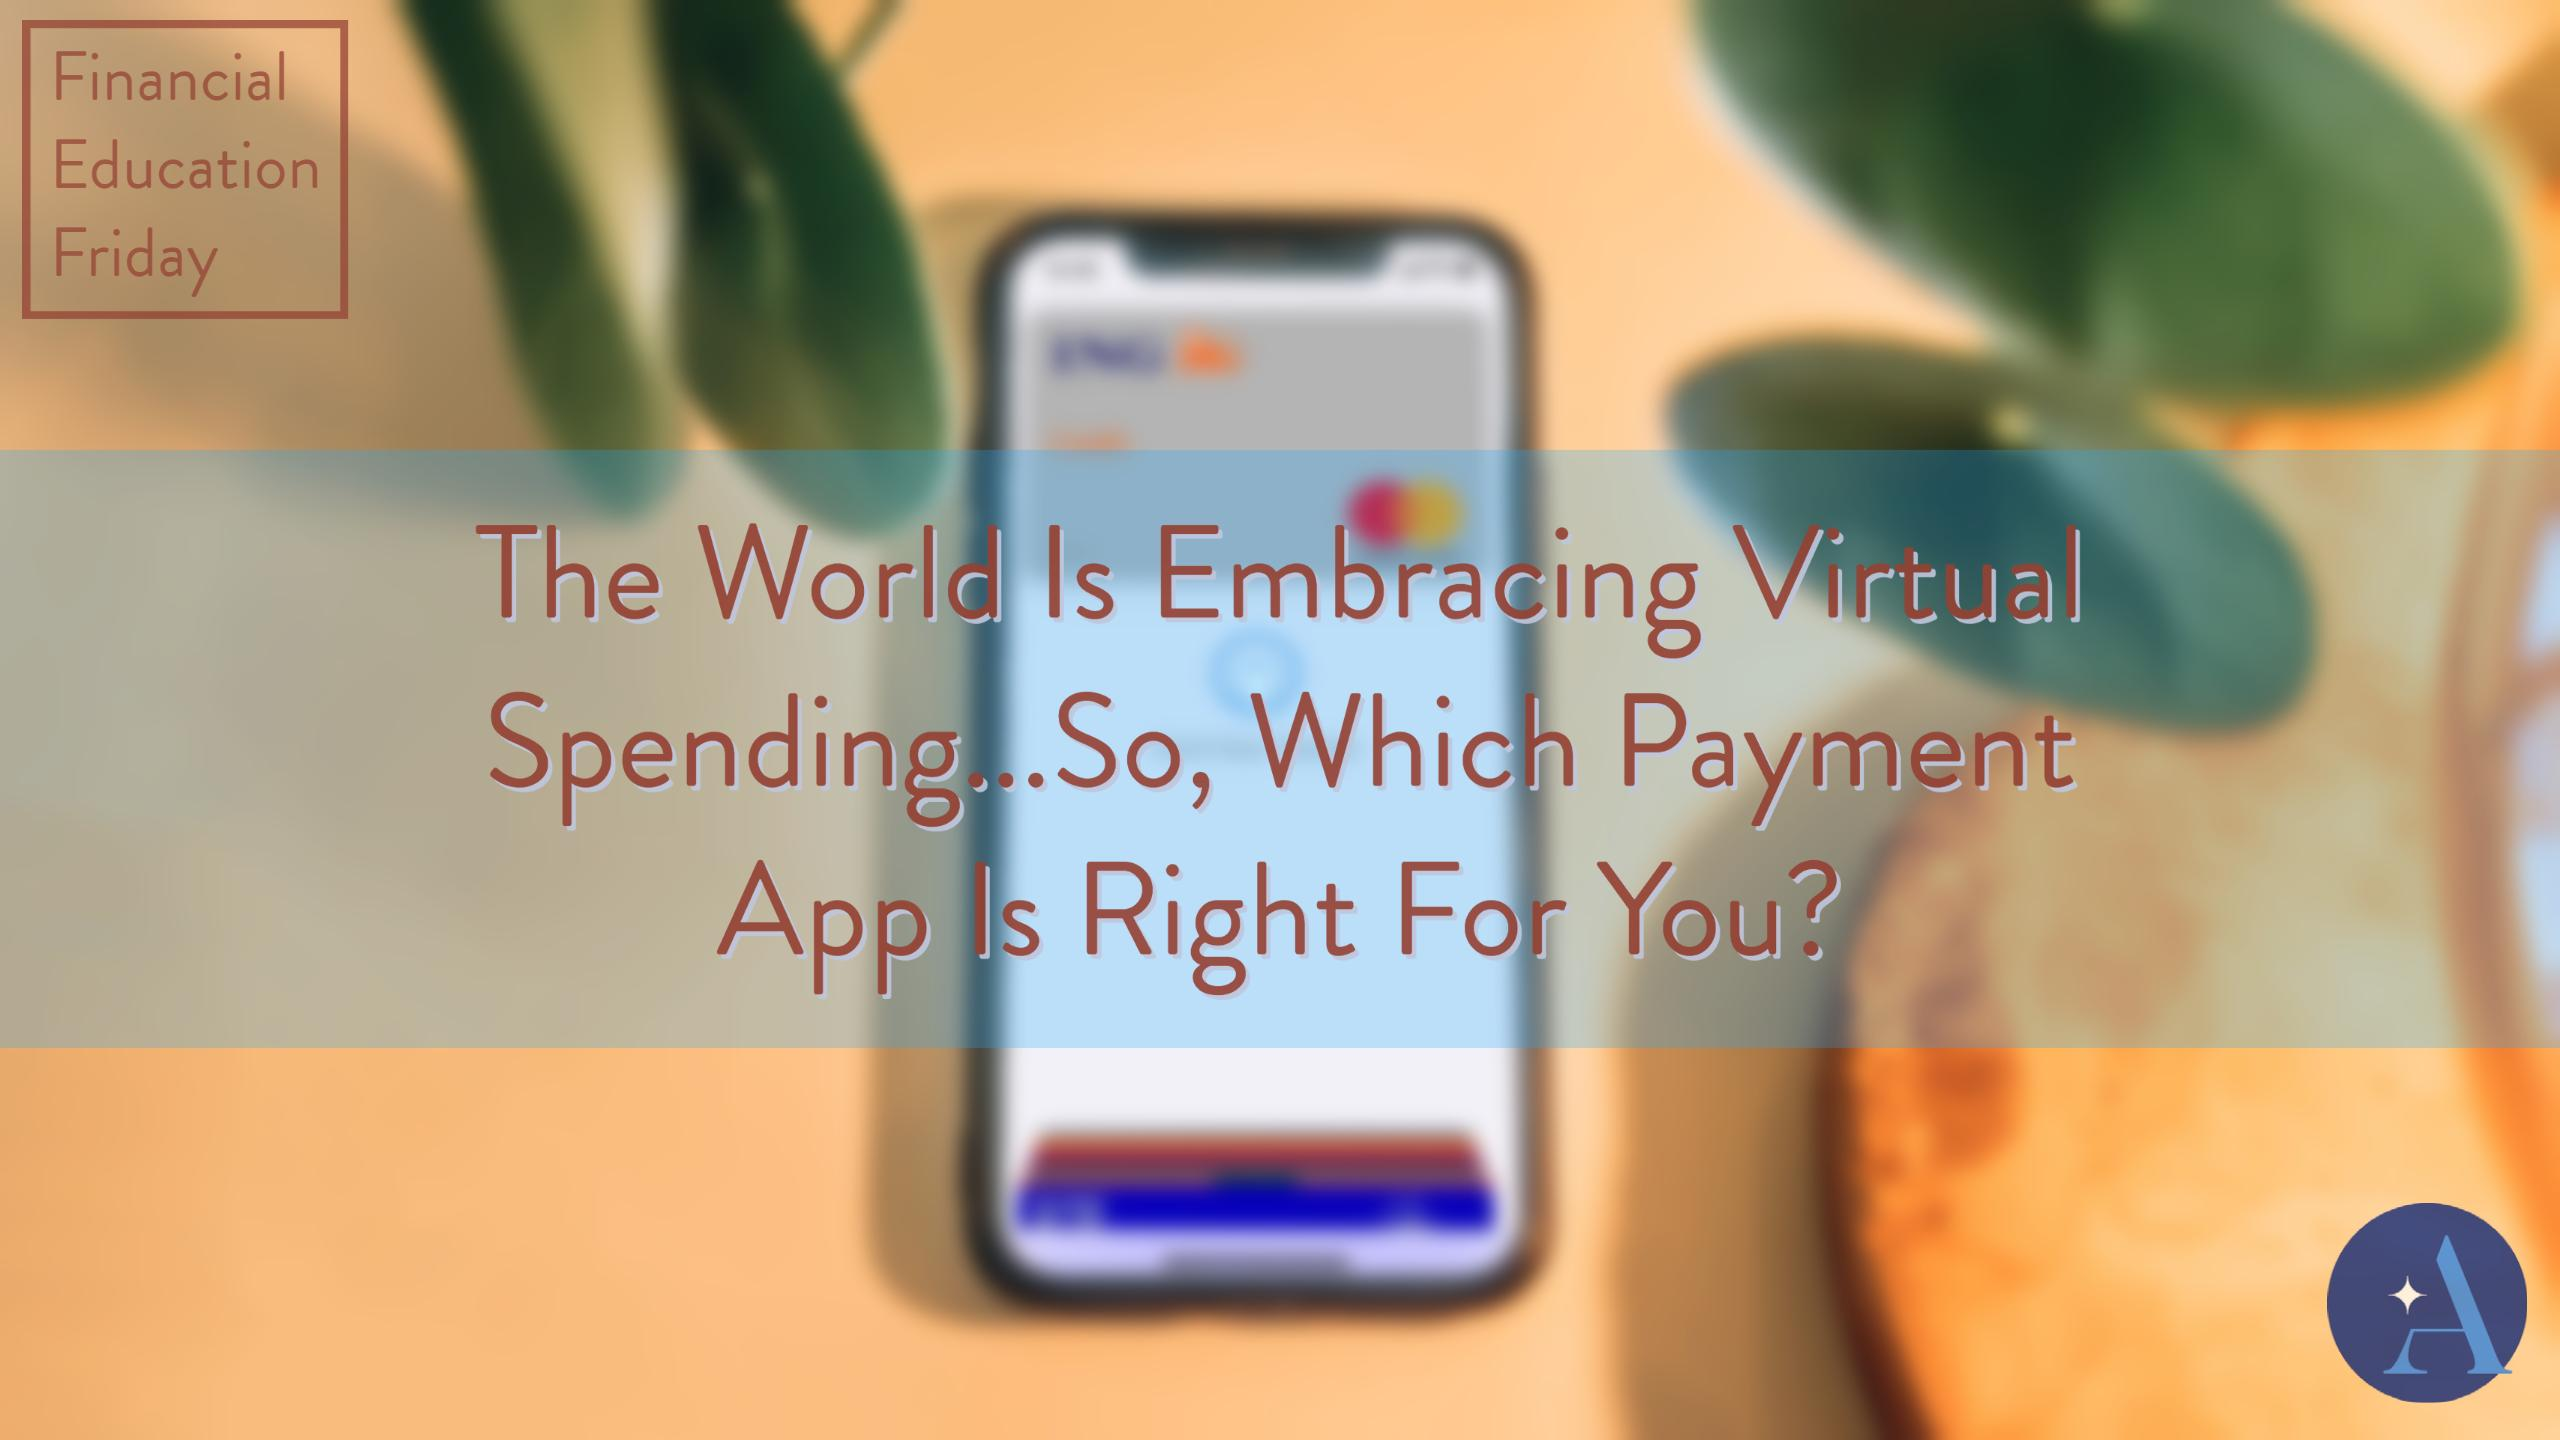 FinEdFriday: The World Is Embracing Virtual Spending...So, Which Payment App Is Right For You? Thumbnail